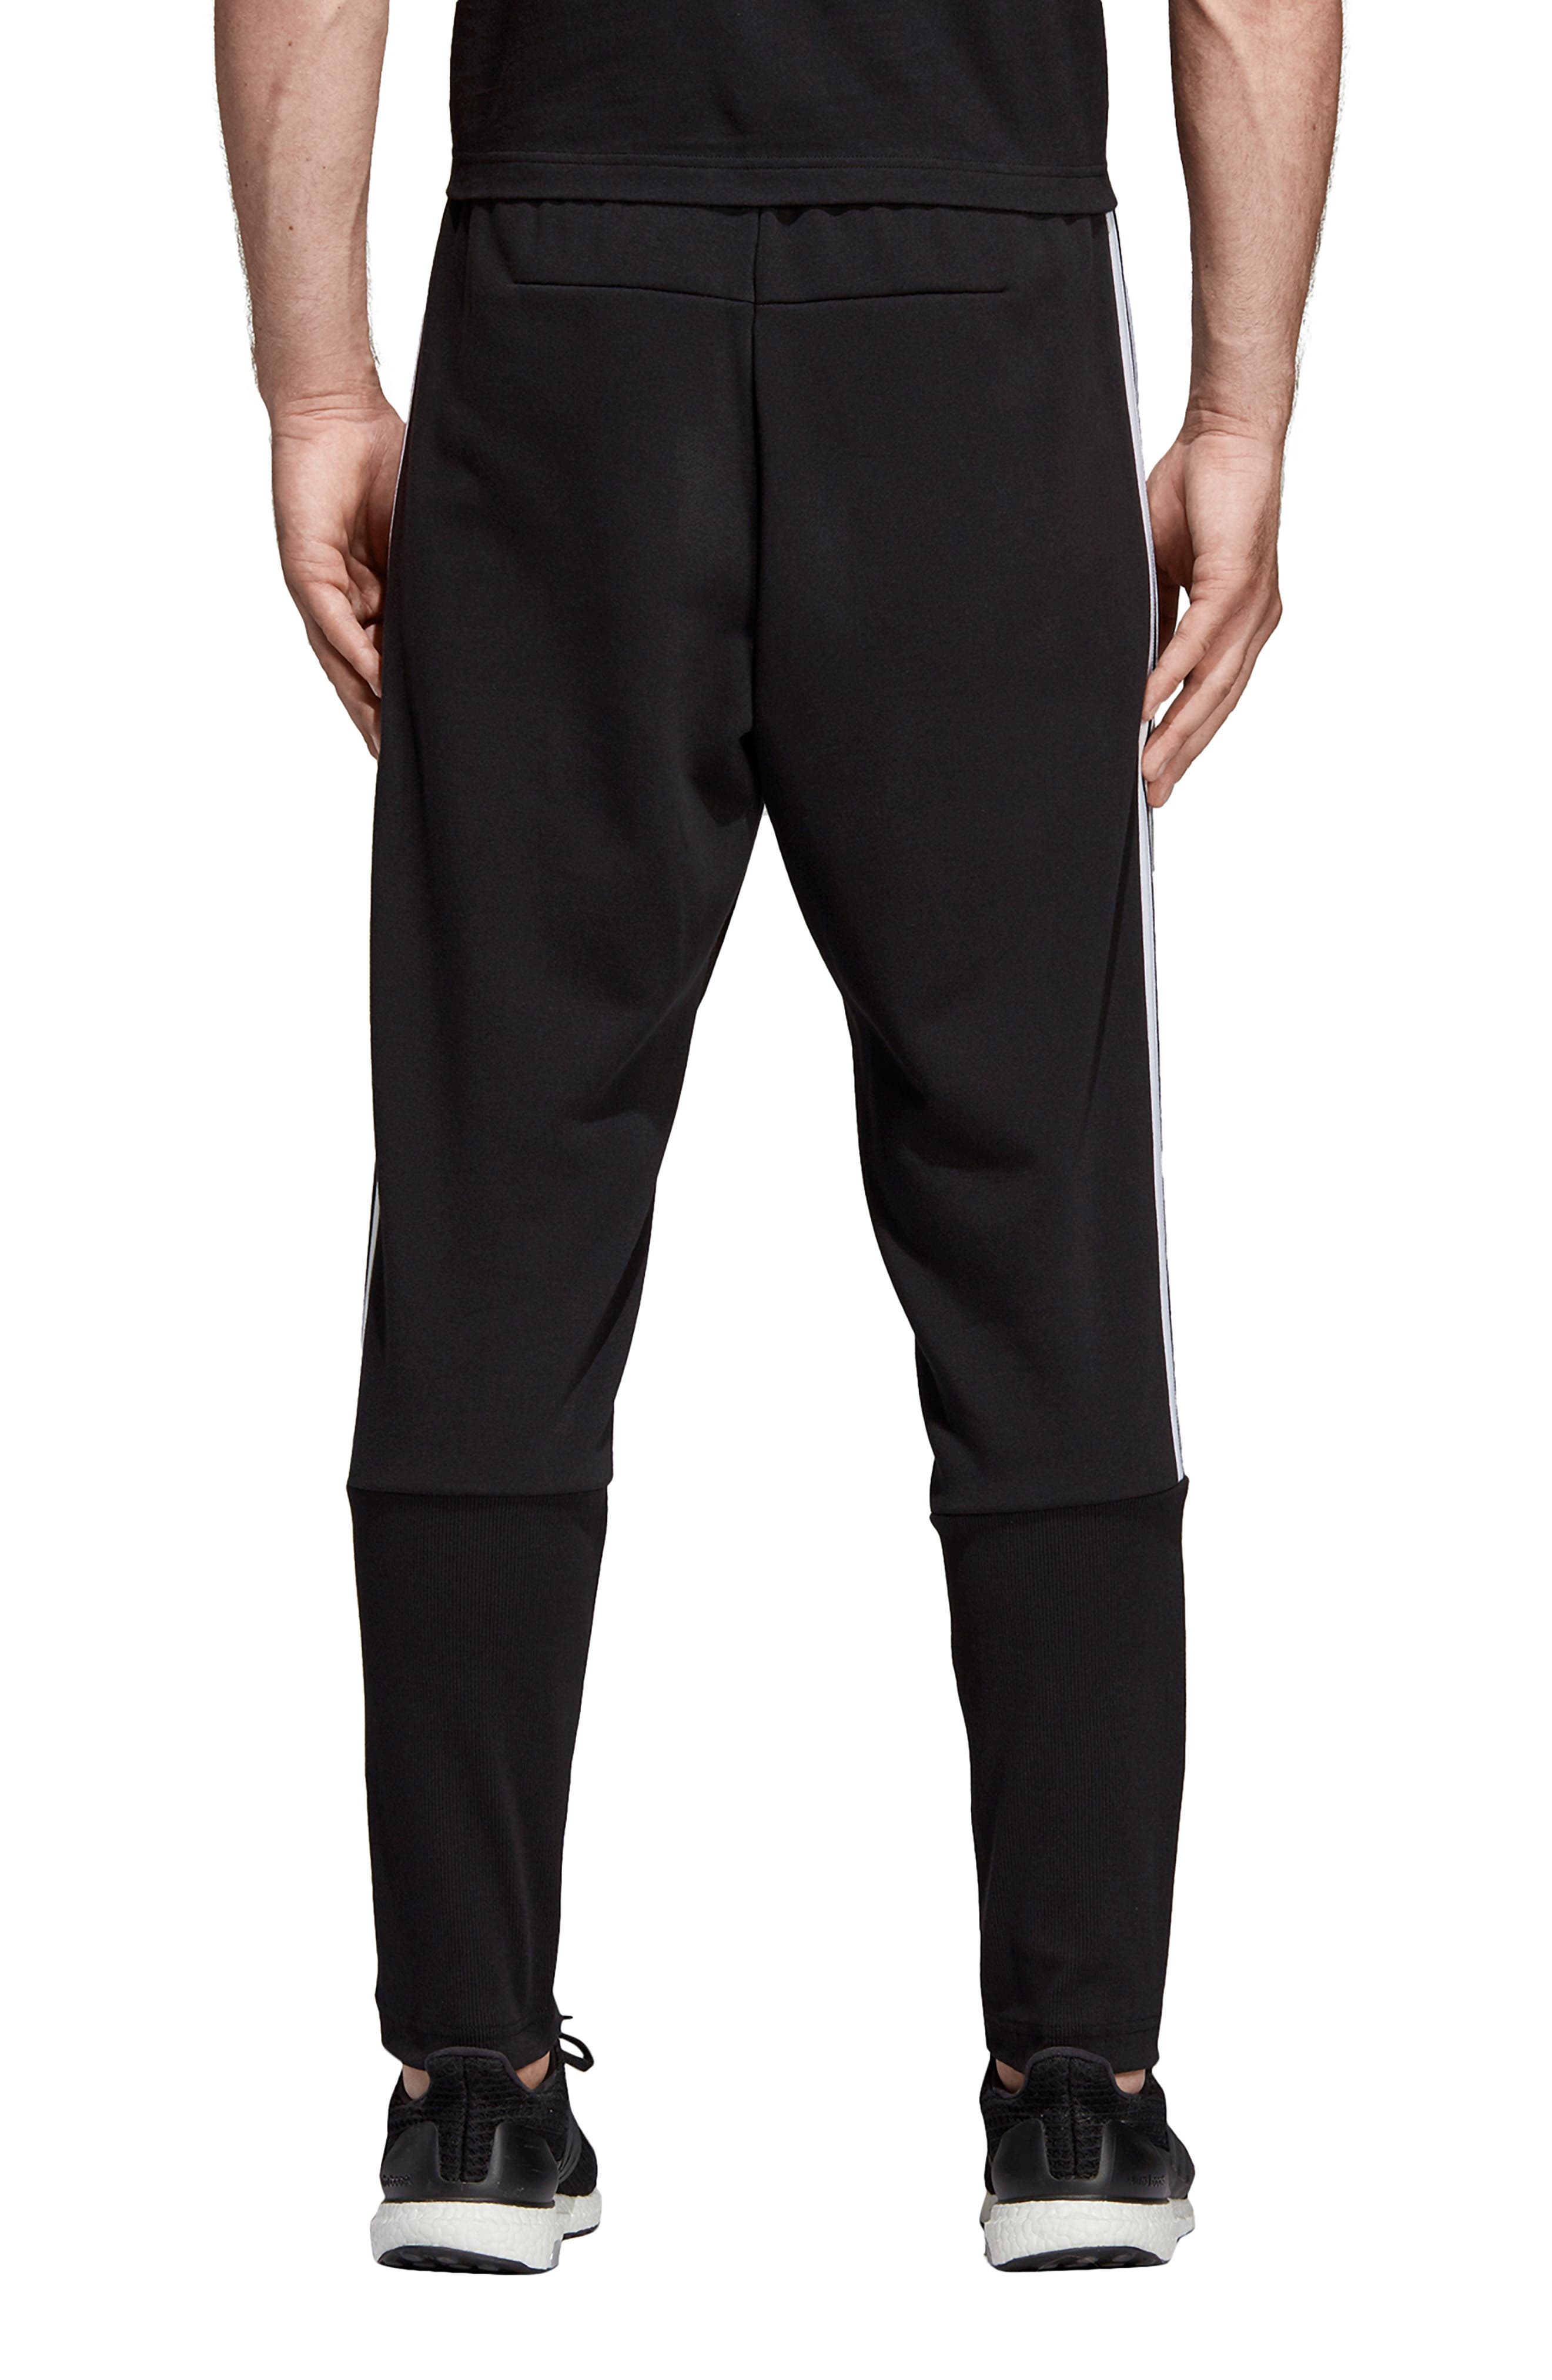 ADIDAS, MH 3S Tiro Sweatpants, Alternate thumbnail 2, color, BLACK/ WHITE